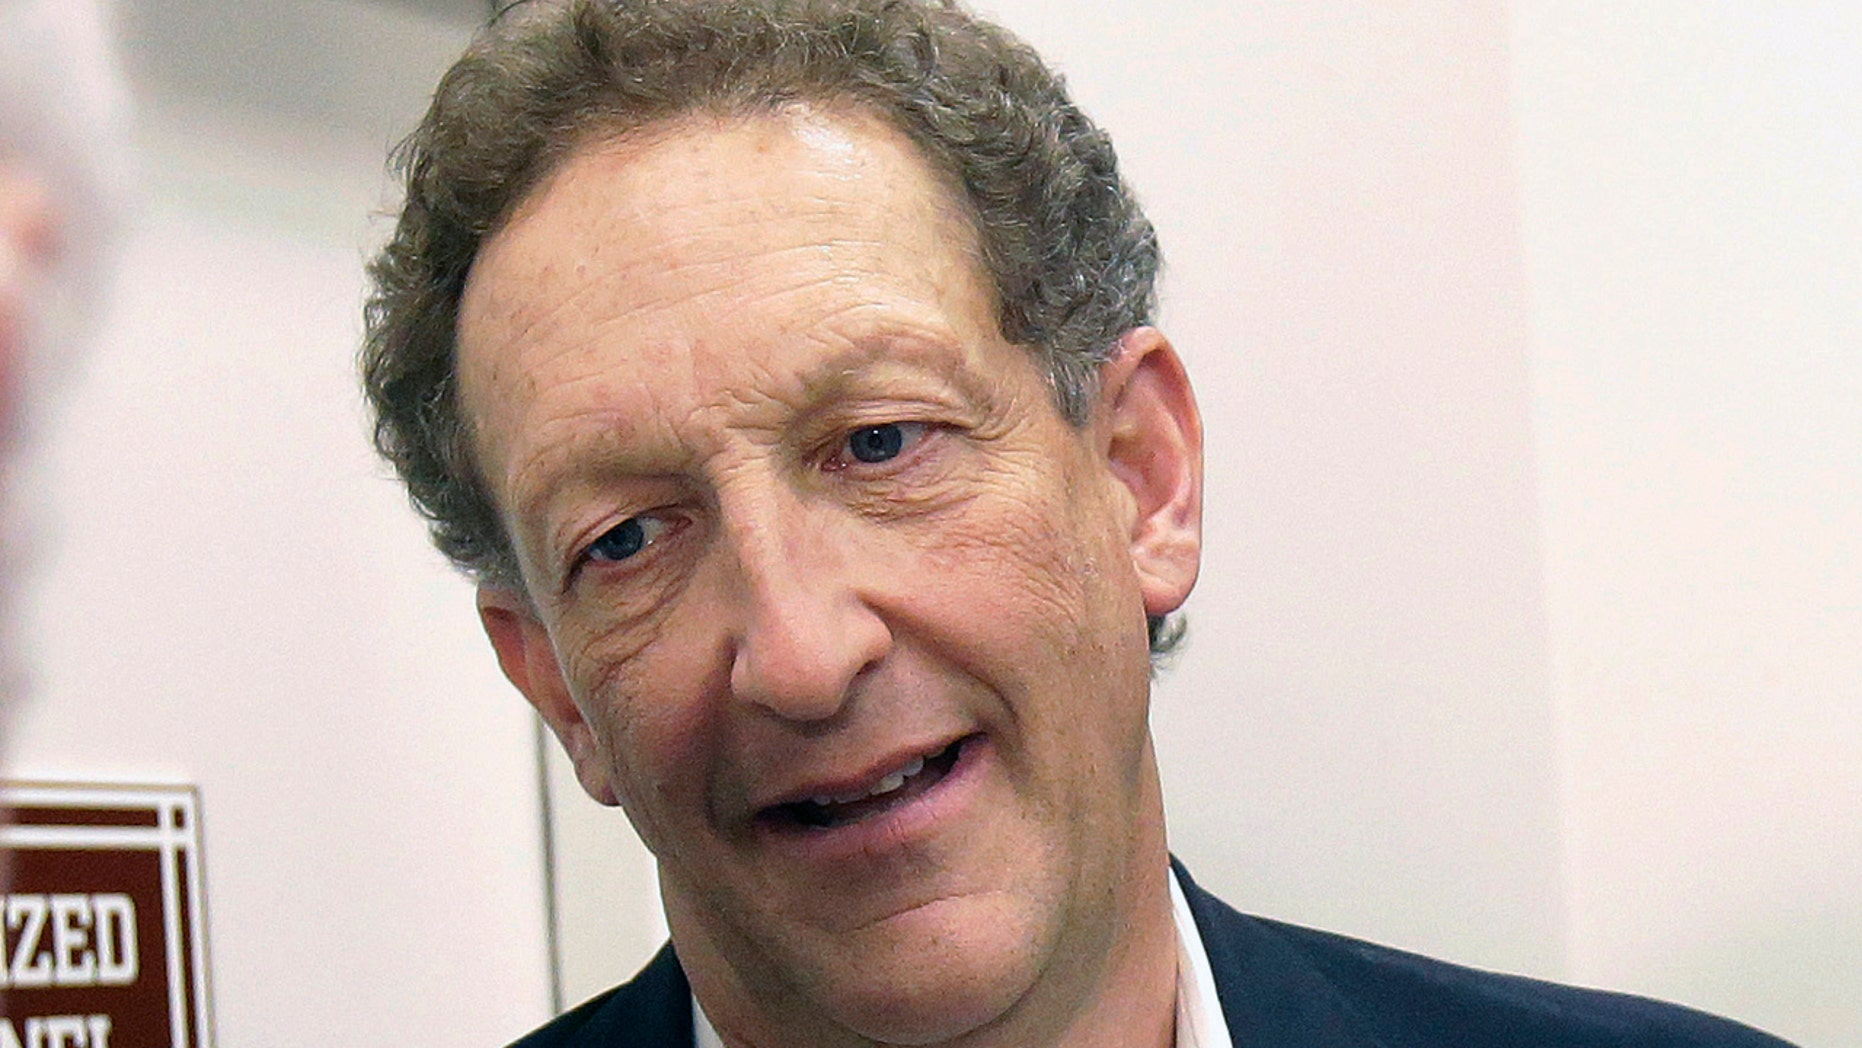 Caught On Camera: Giants CEO Larry Baer In Physical Altercation With Wife